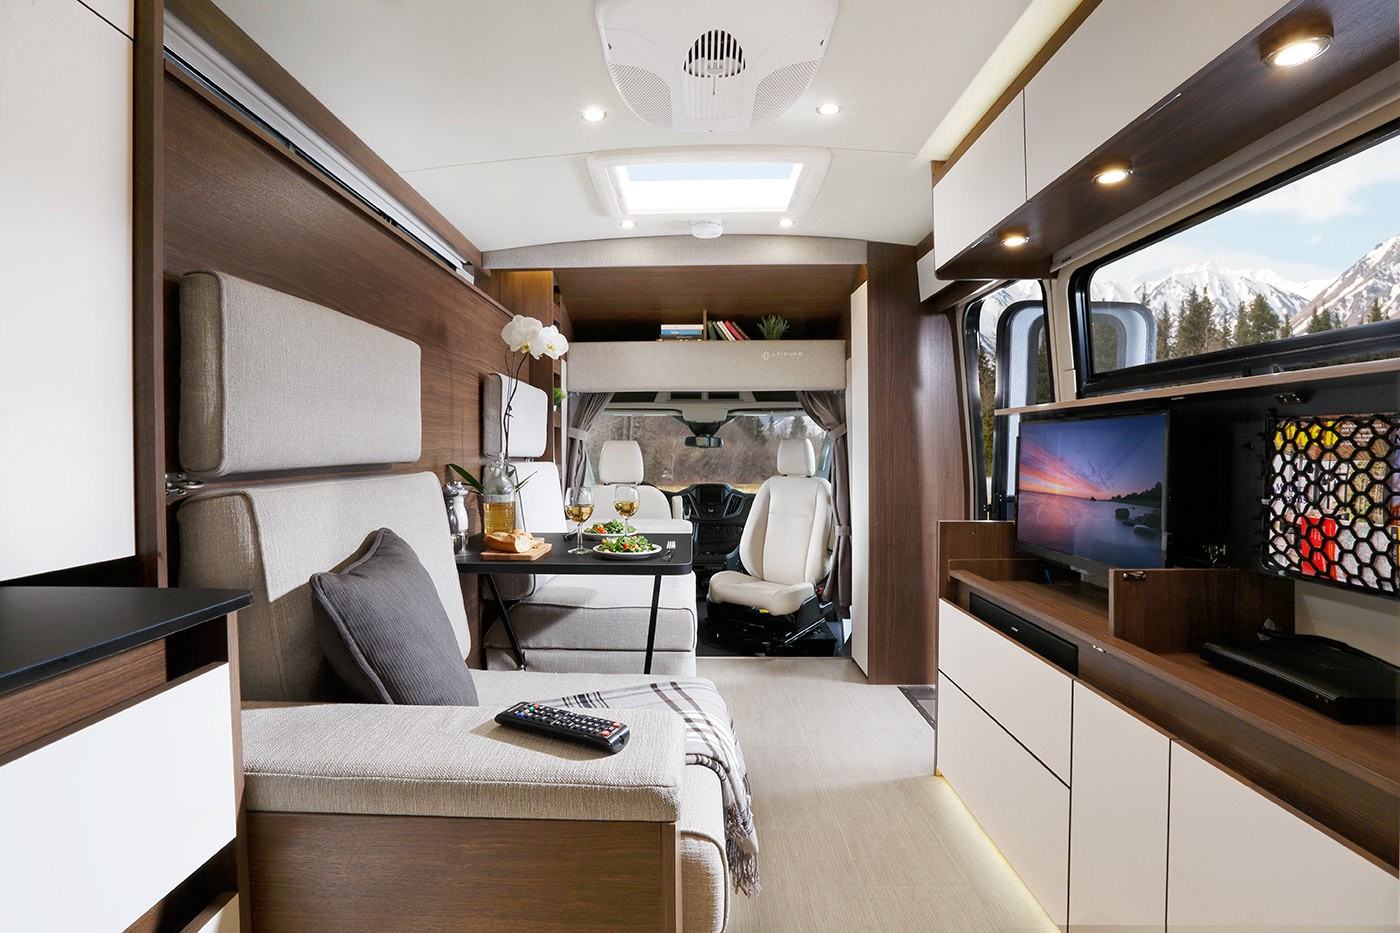 Entertainment On The Open Road Just Reached A Whole New Level With Oversized Chairs That Switch From Dinette To TV Mode Enjoy Shows And Movies